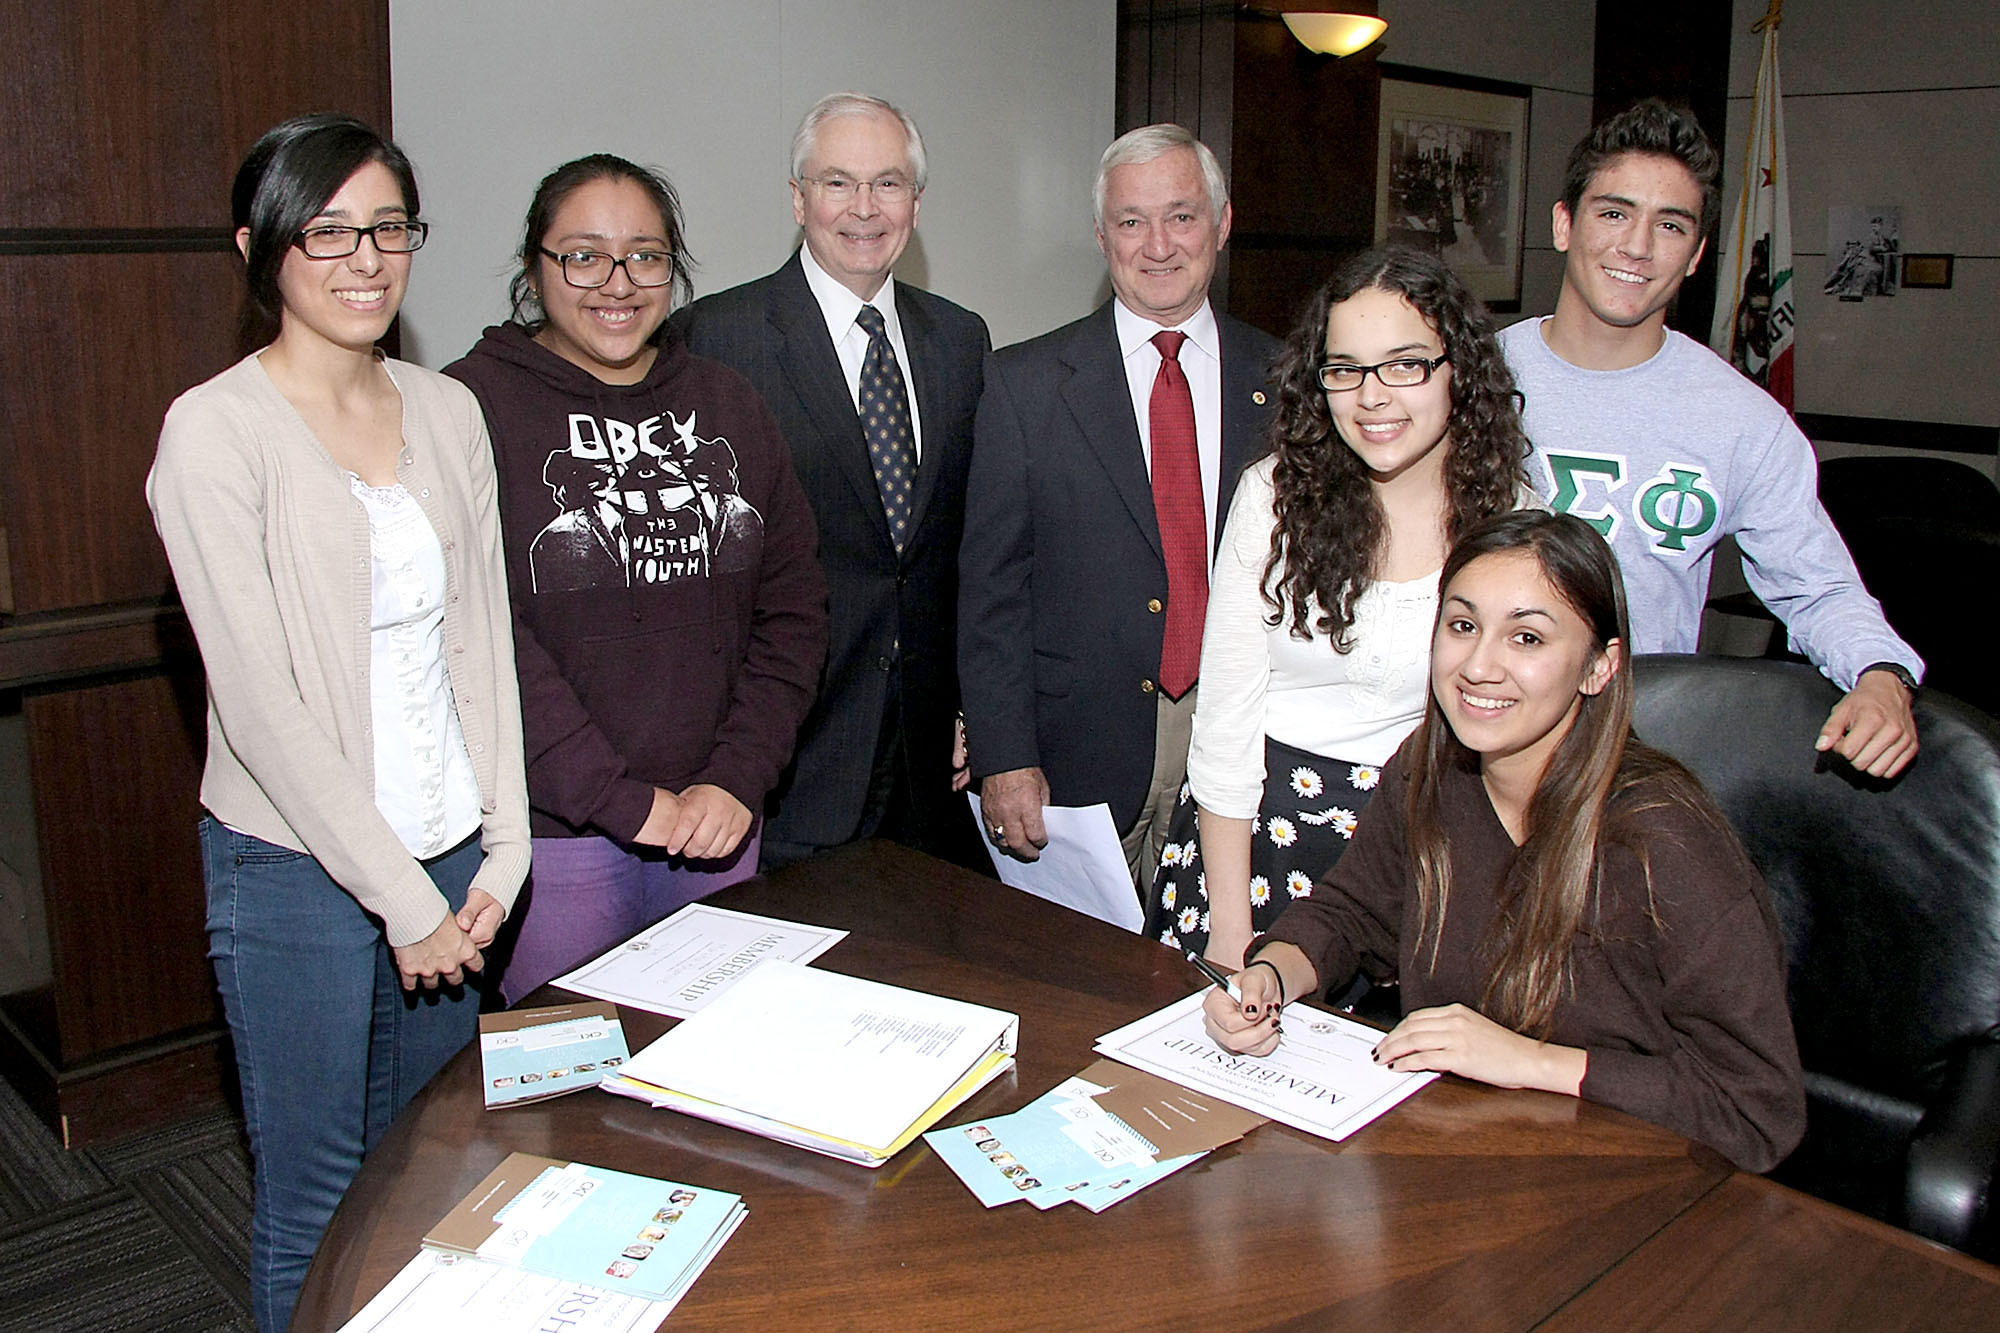 Student members of the Circle K club at Woodbury University, from left, Cassandra Perez, Alejandra Martinez, Veronica Calabrese, Andrea Alejandre and German Paredes with Burbank Noon Kiwanis members Barry Ross, center left, and Ron Rothacher.